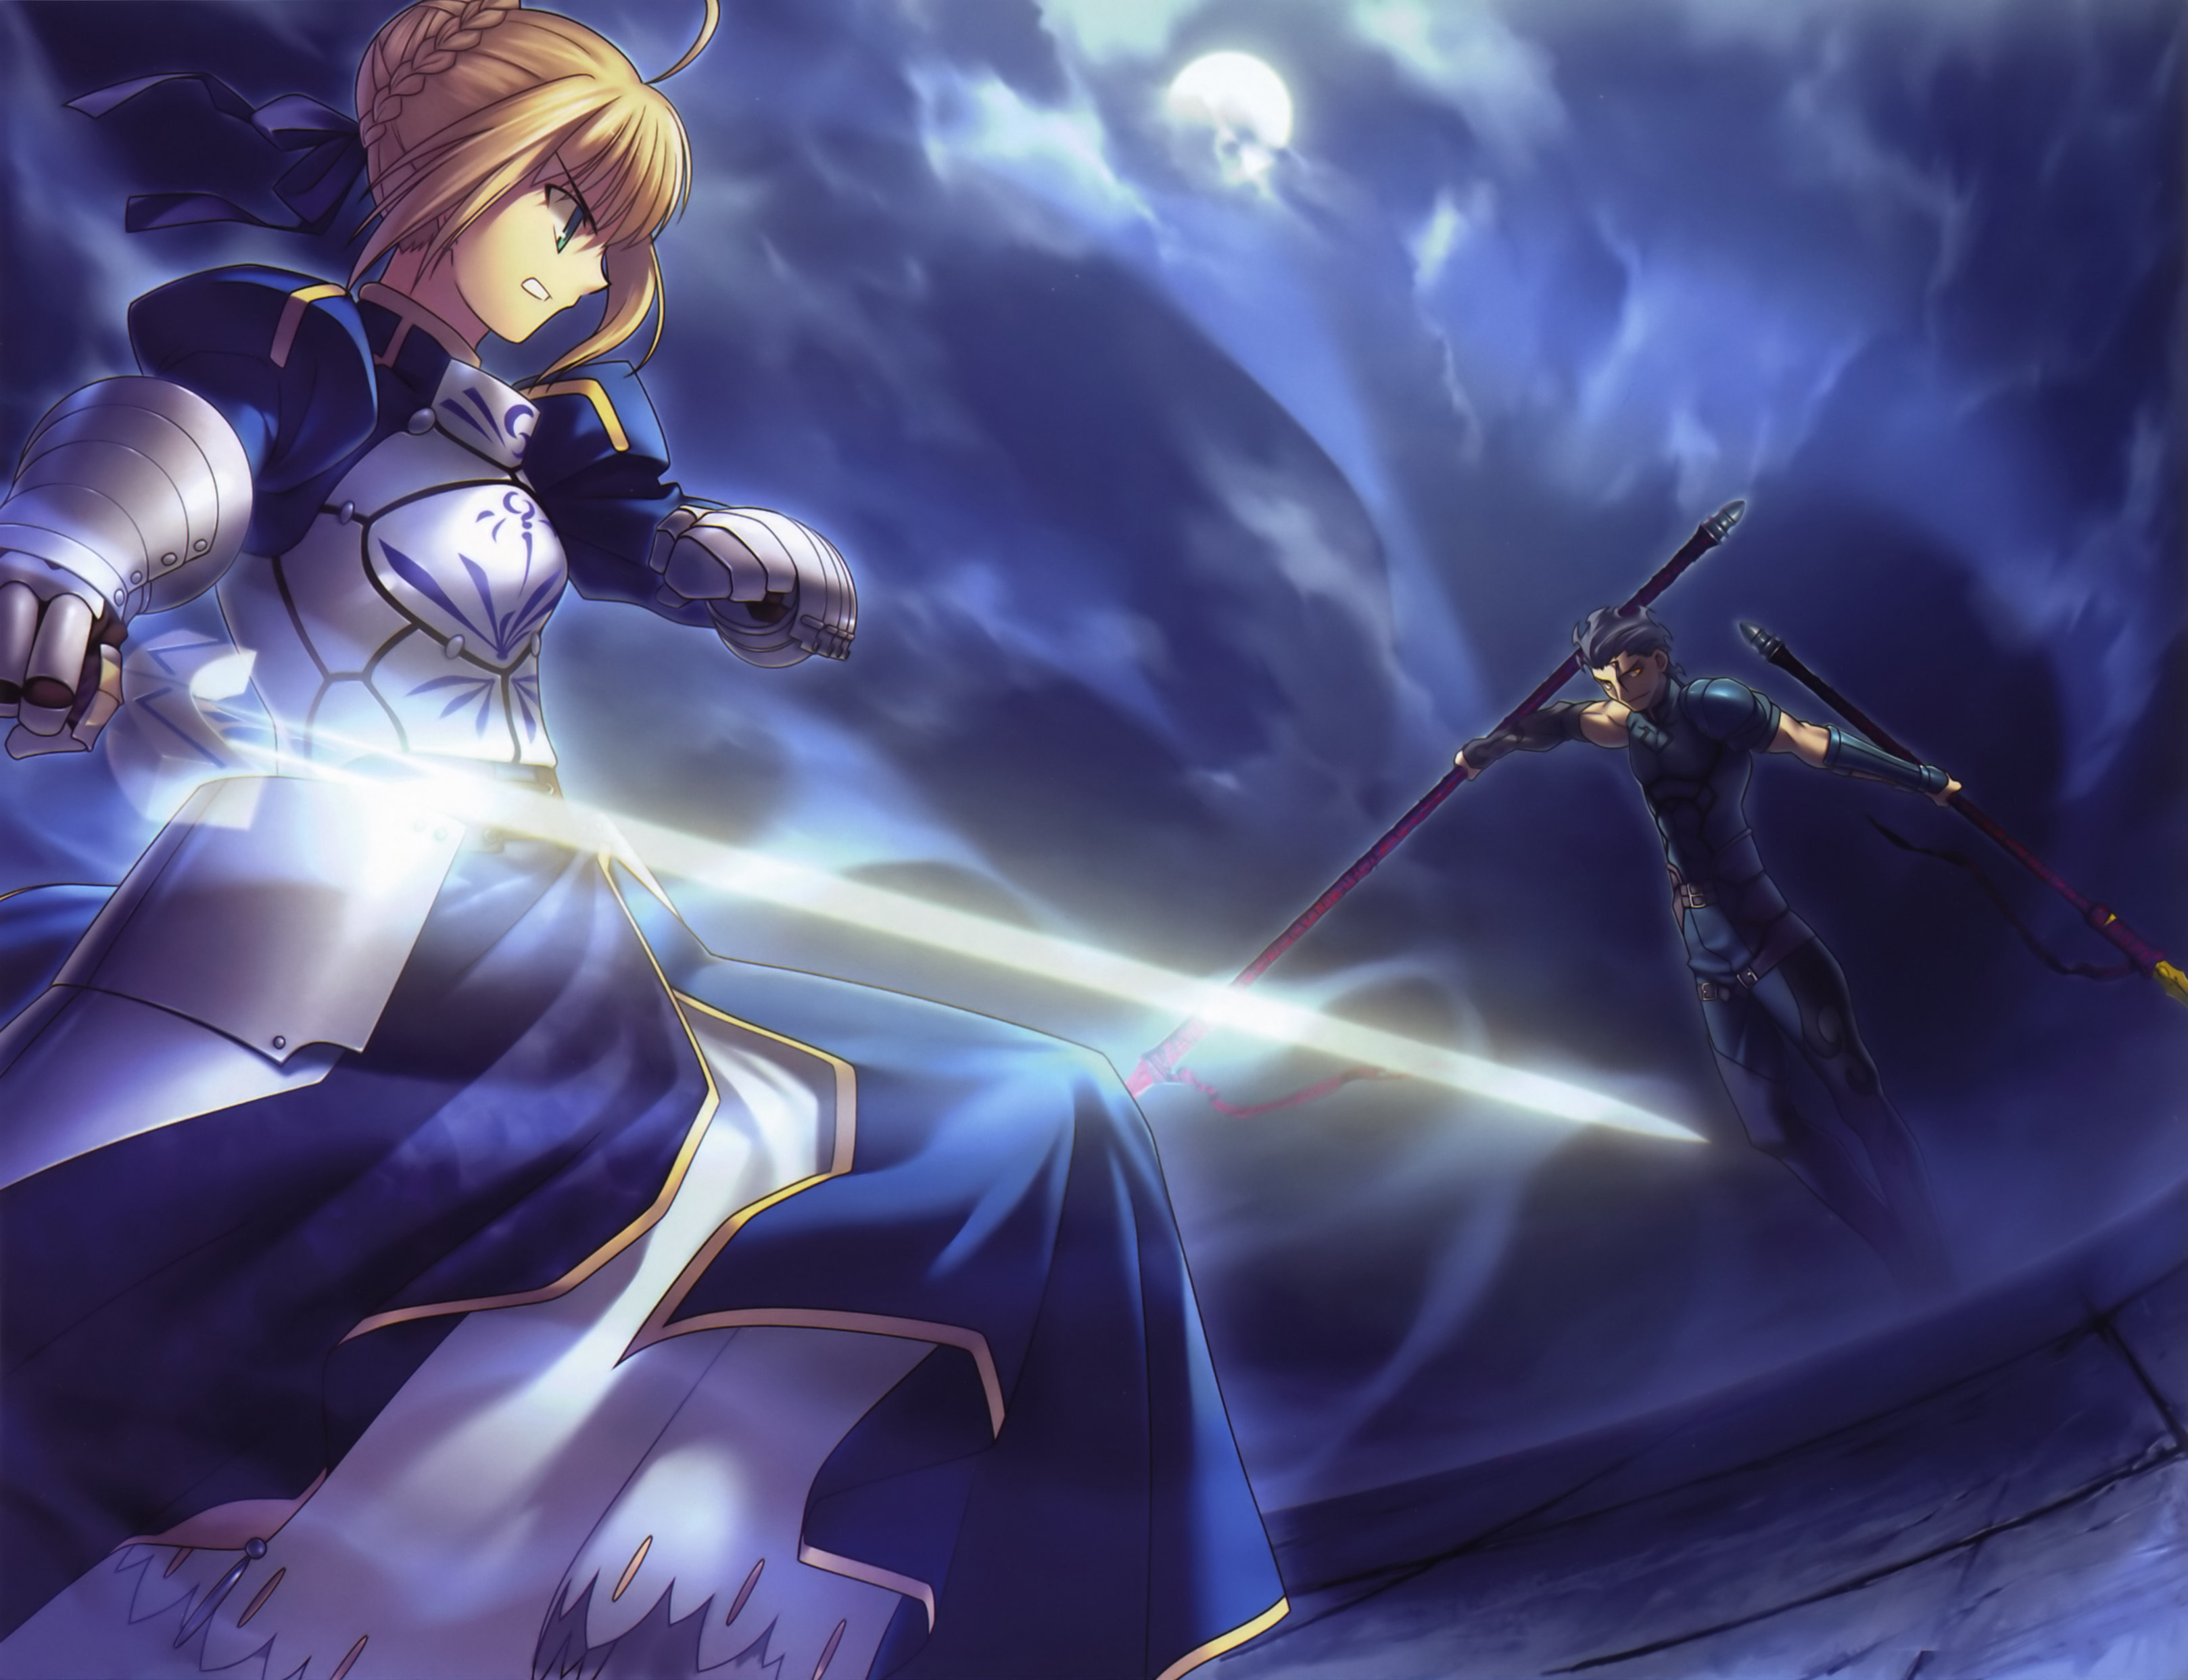 anime blue saber ndash - photo #18